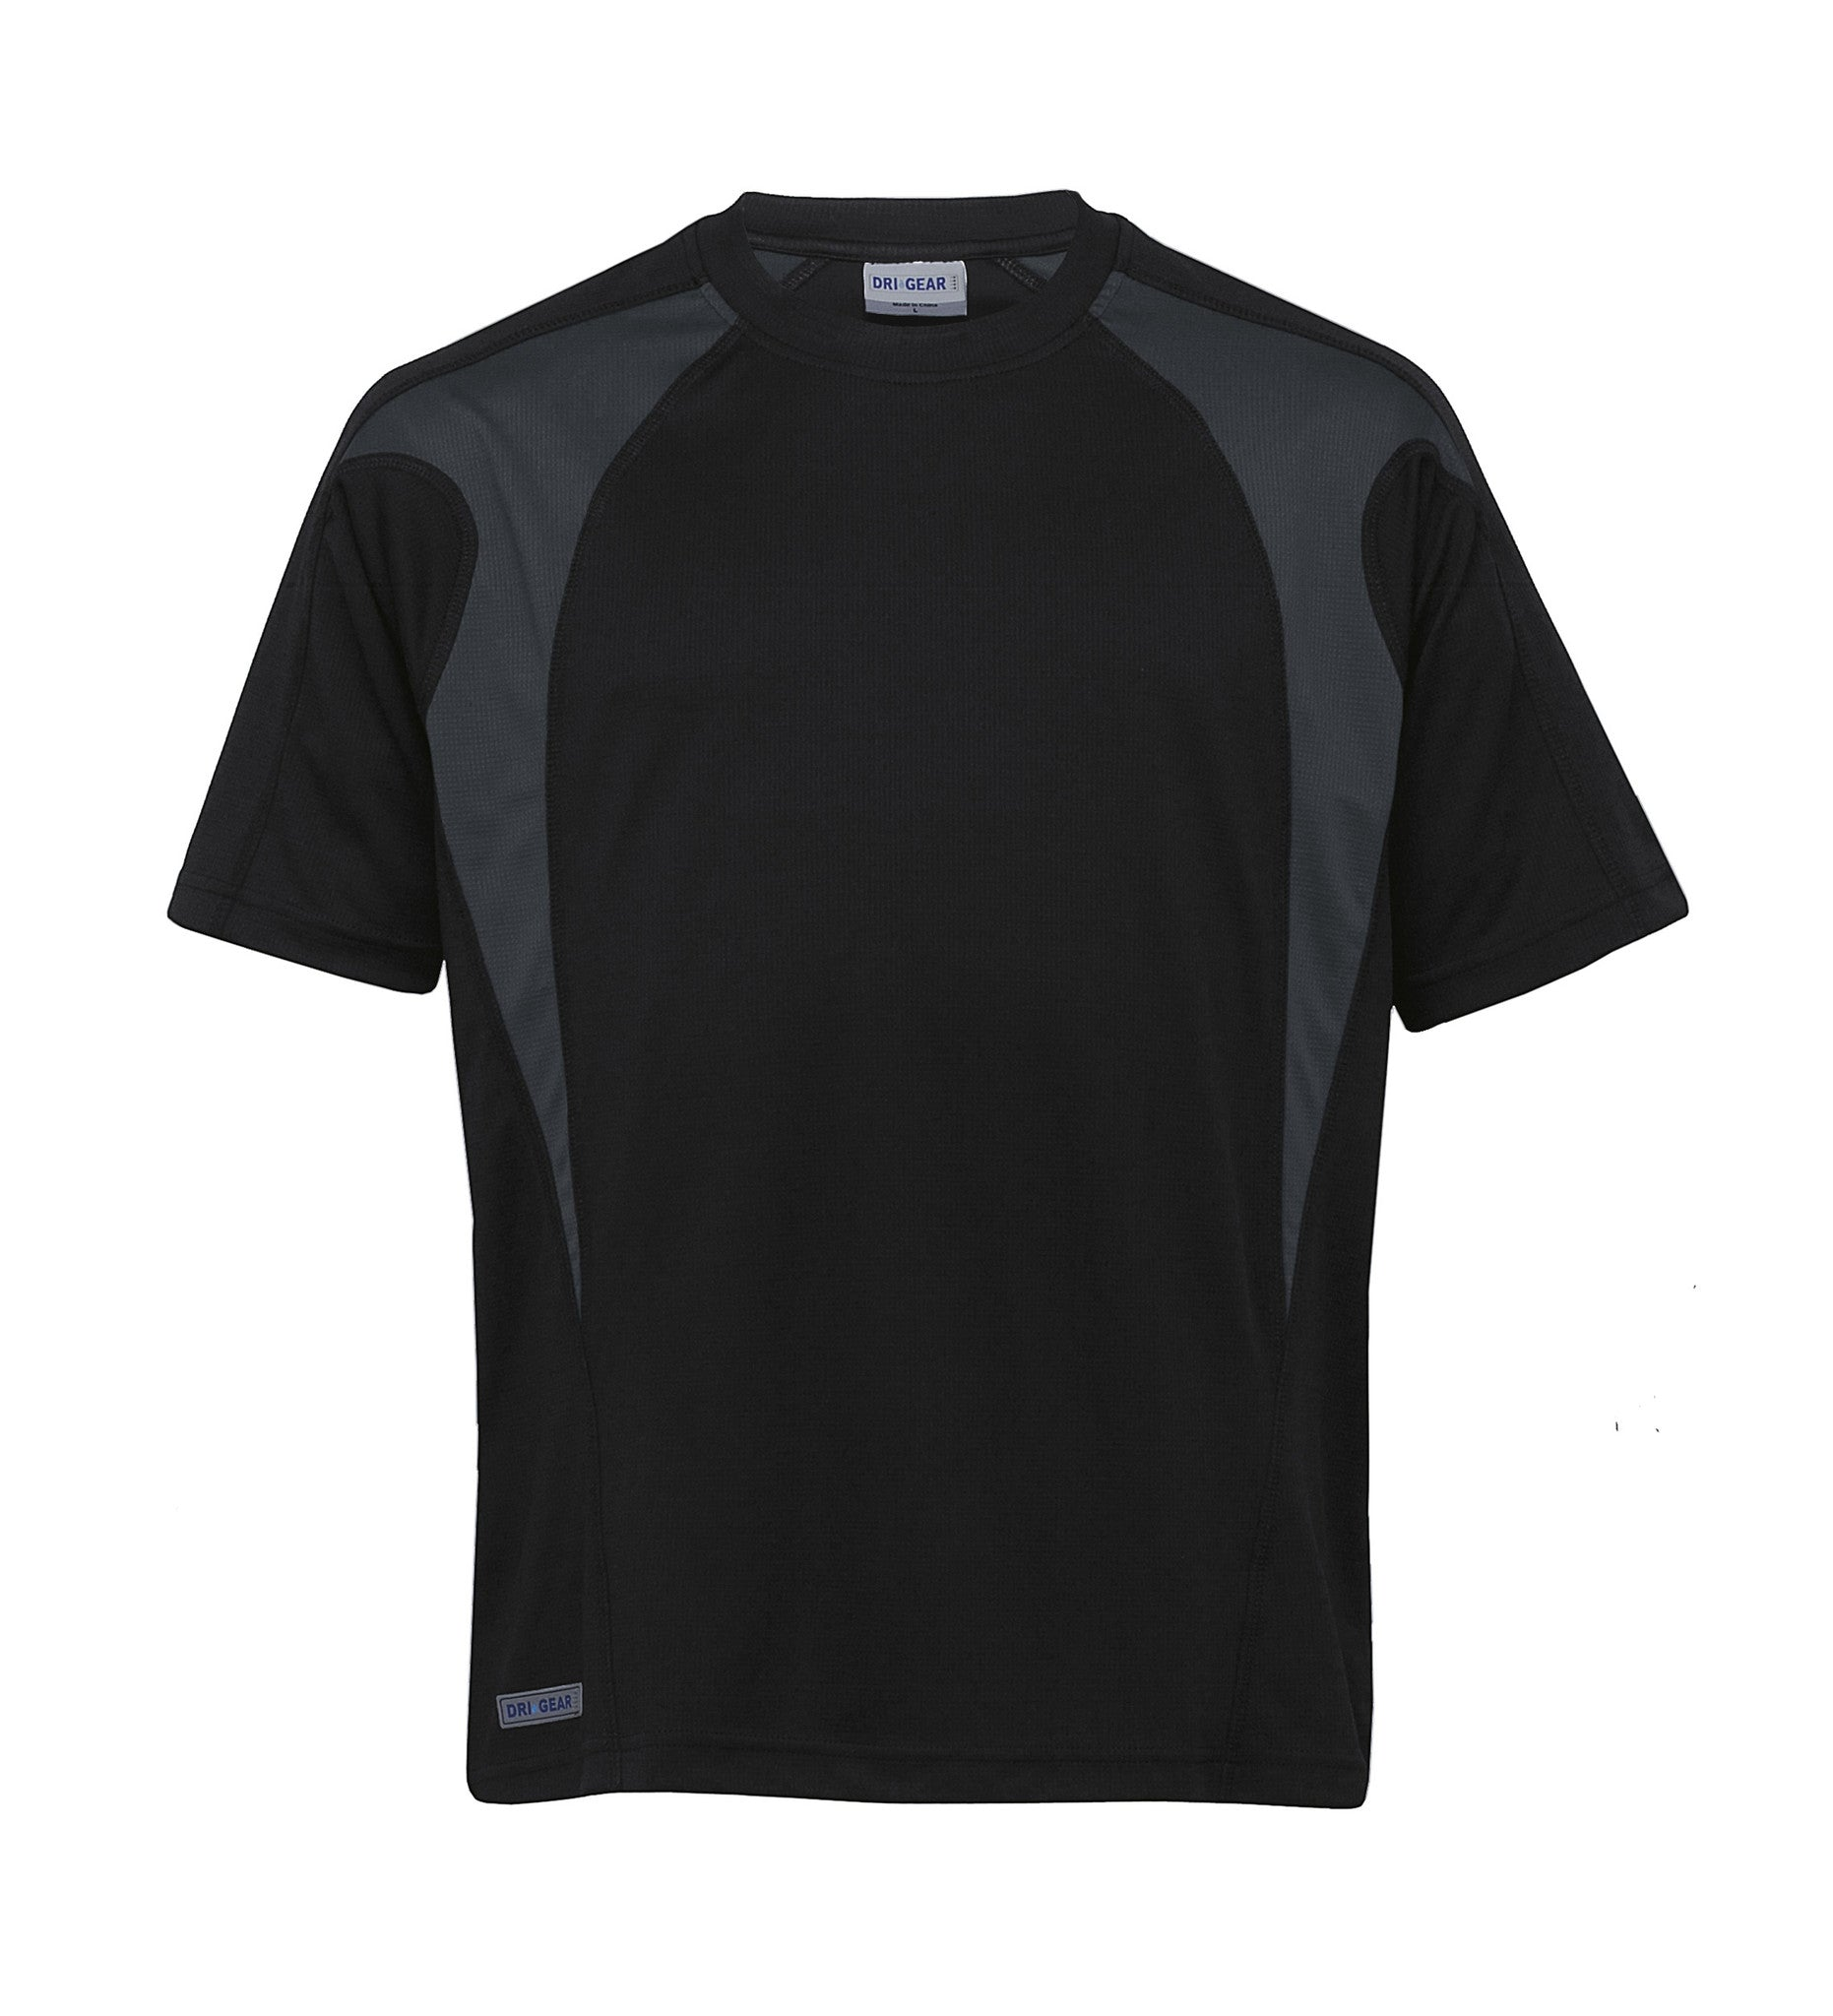 Gear For Life-Gear For Life Unisex Dri Gear Spliced Zenith Tee(1st 7 Colours)--Corporate Apparel Online - 1